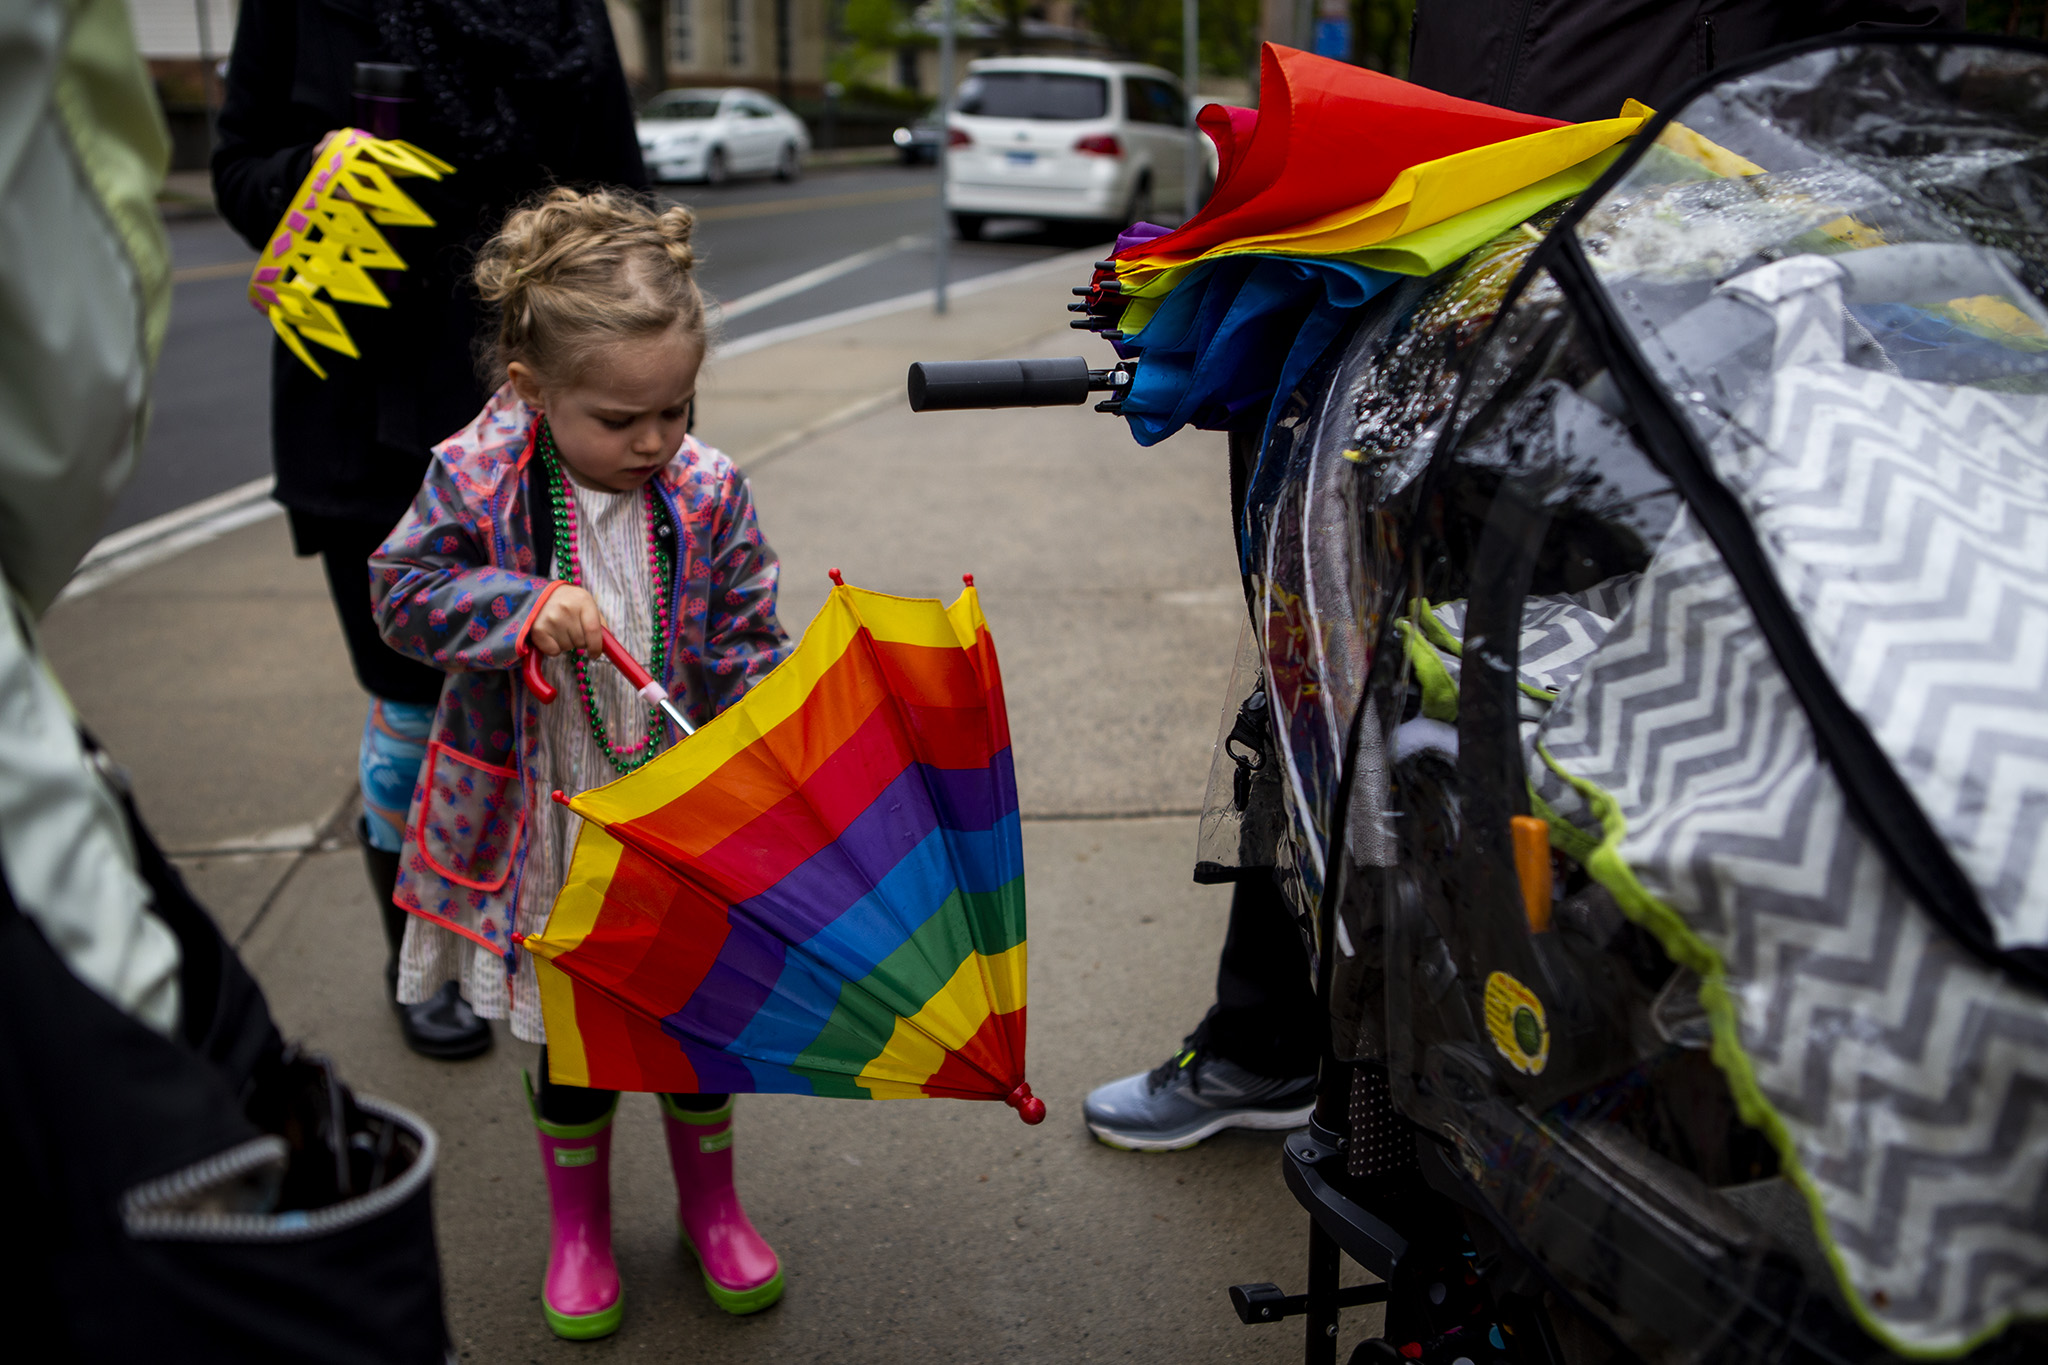 rainbow-umbrella-child-photography.jpg